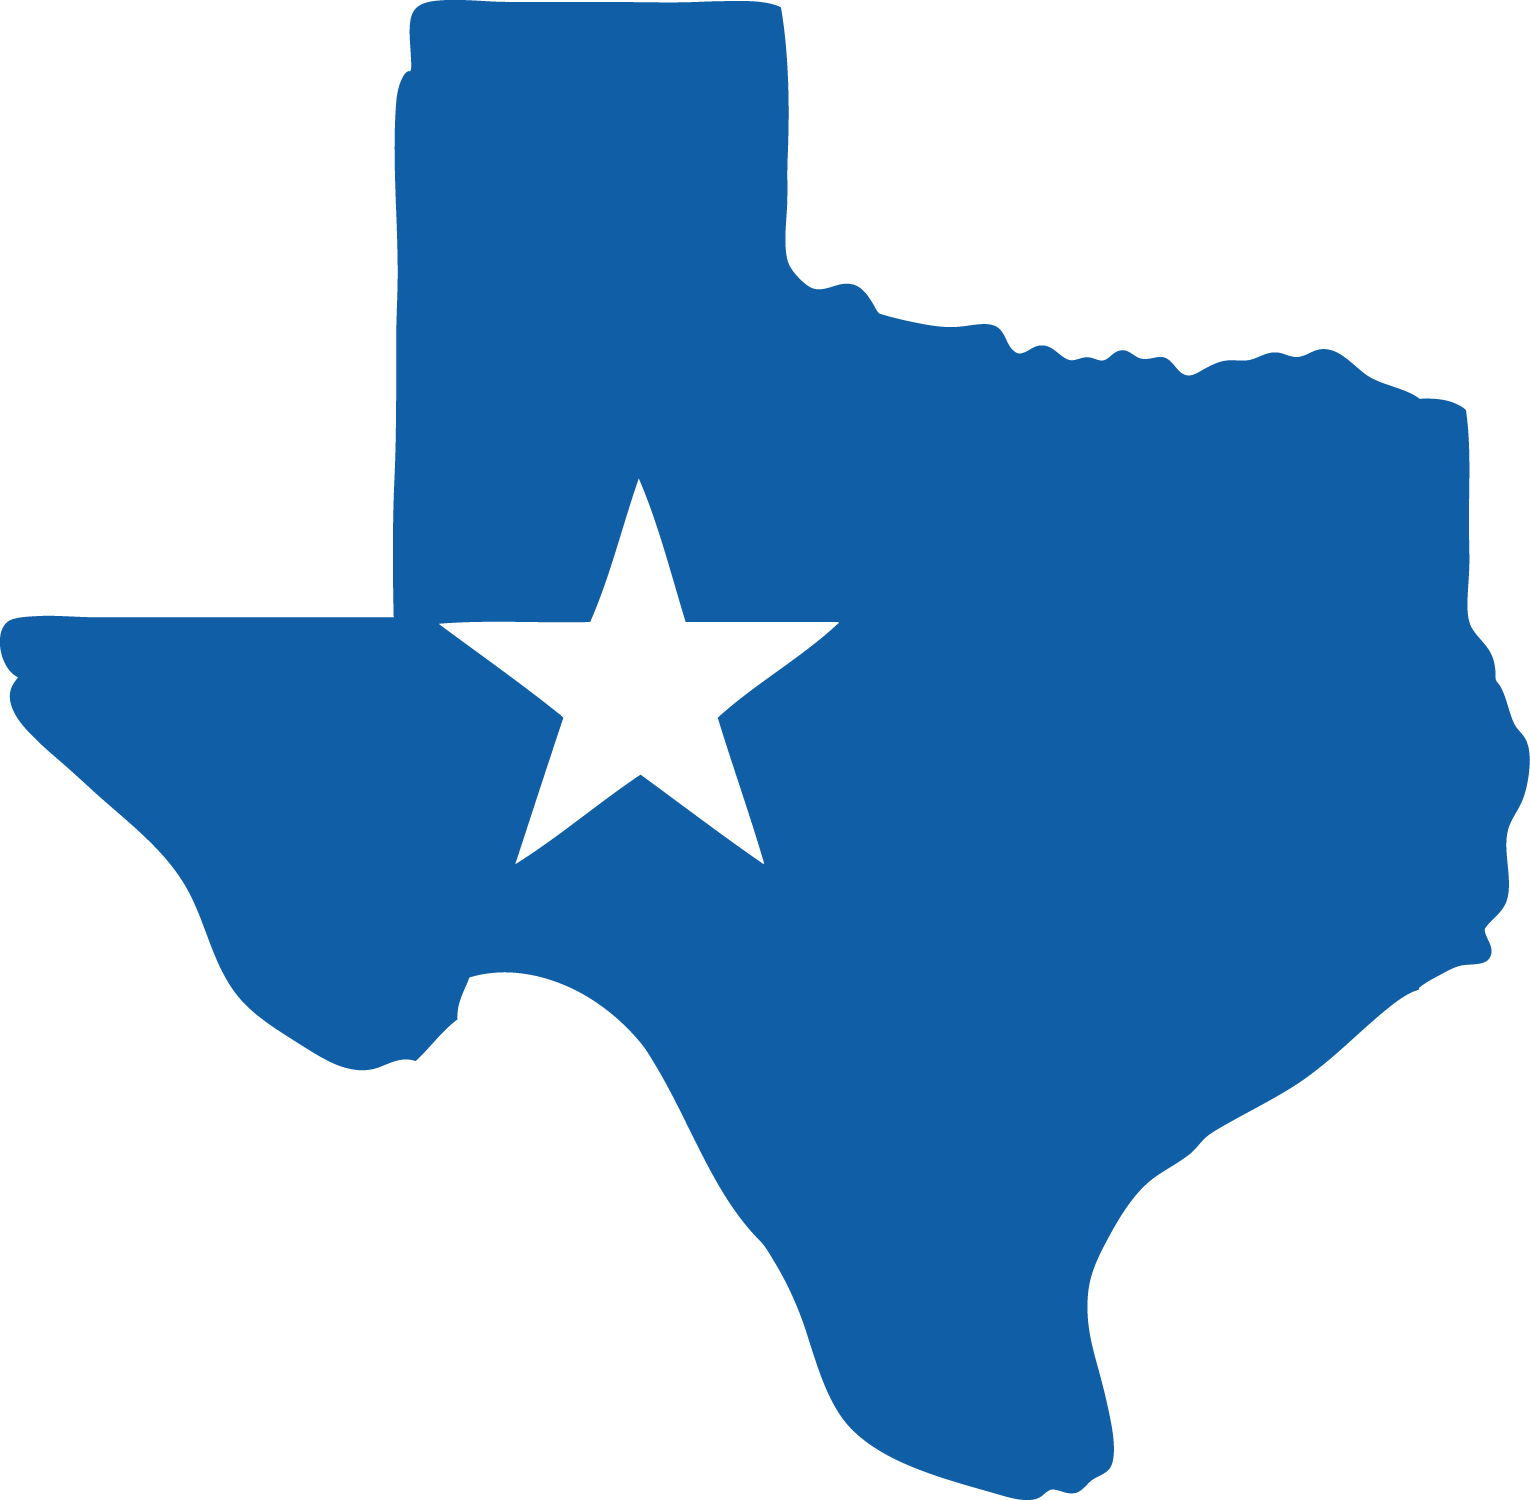 12 Texas State Vector Silhouettes Clip Art Images.